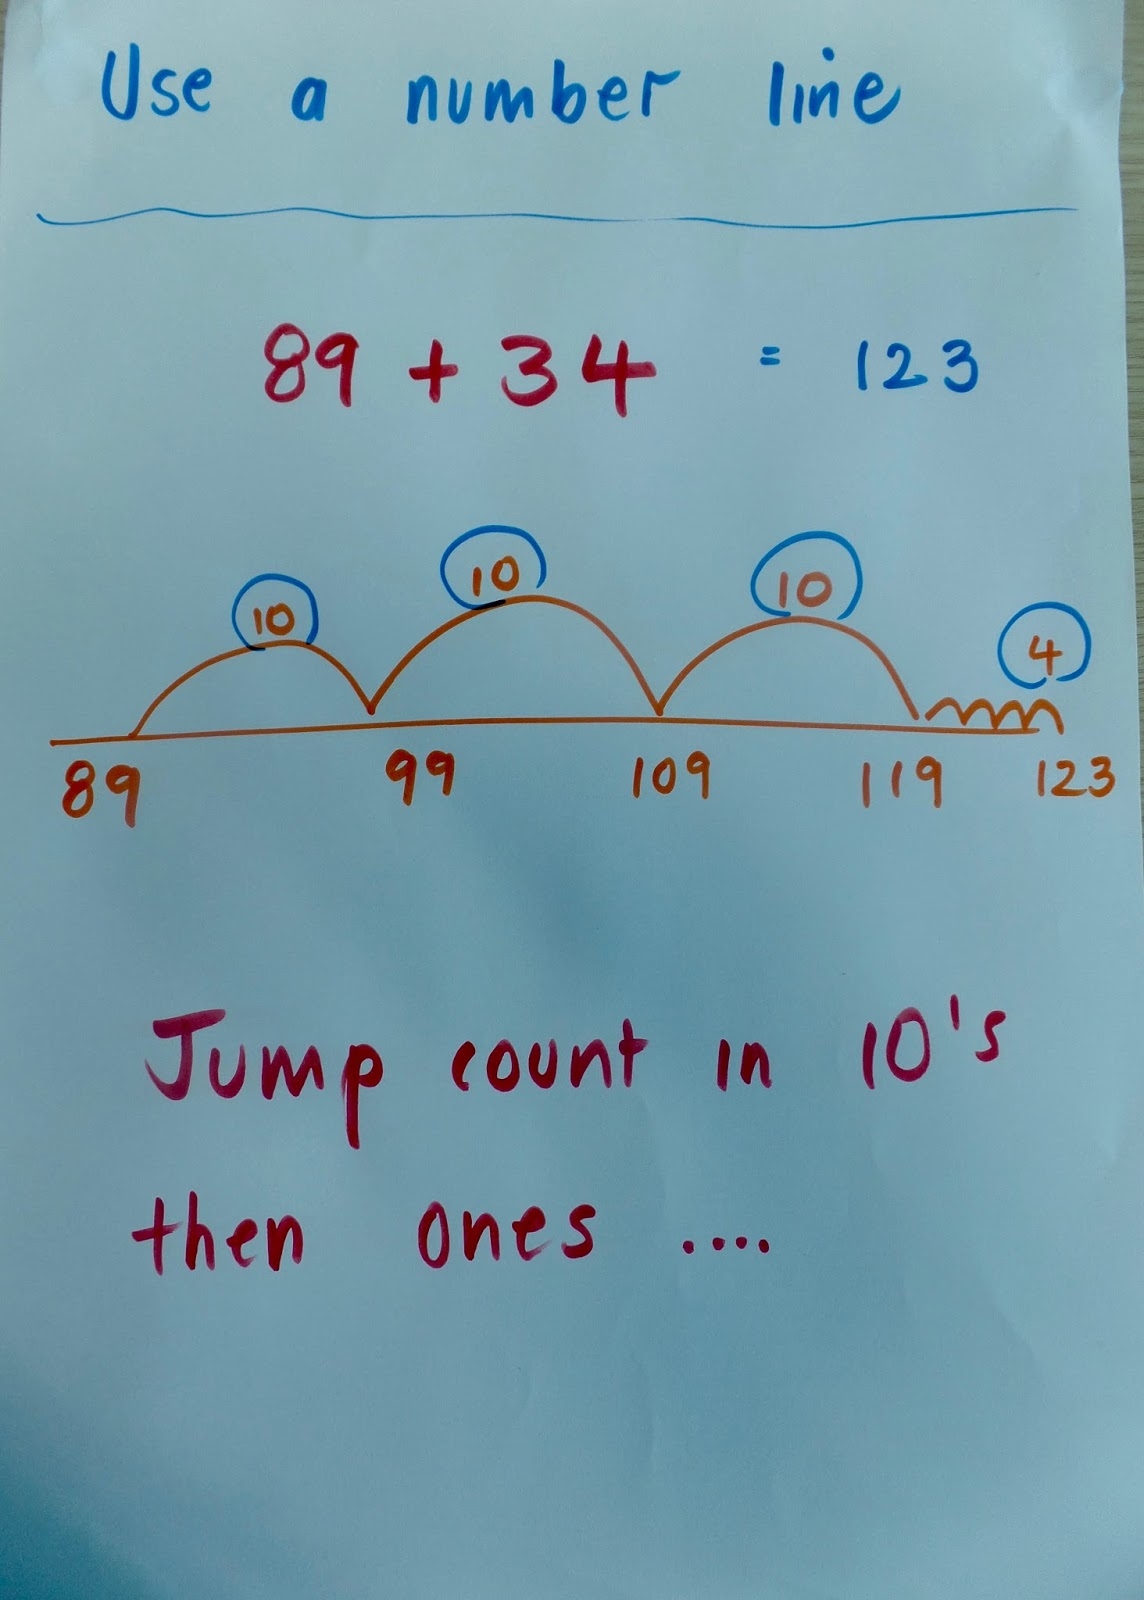 Ms Alisons Blog: Adding using a number line / Jump counting